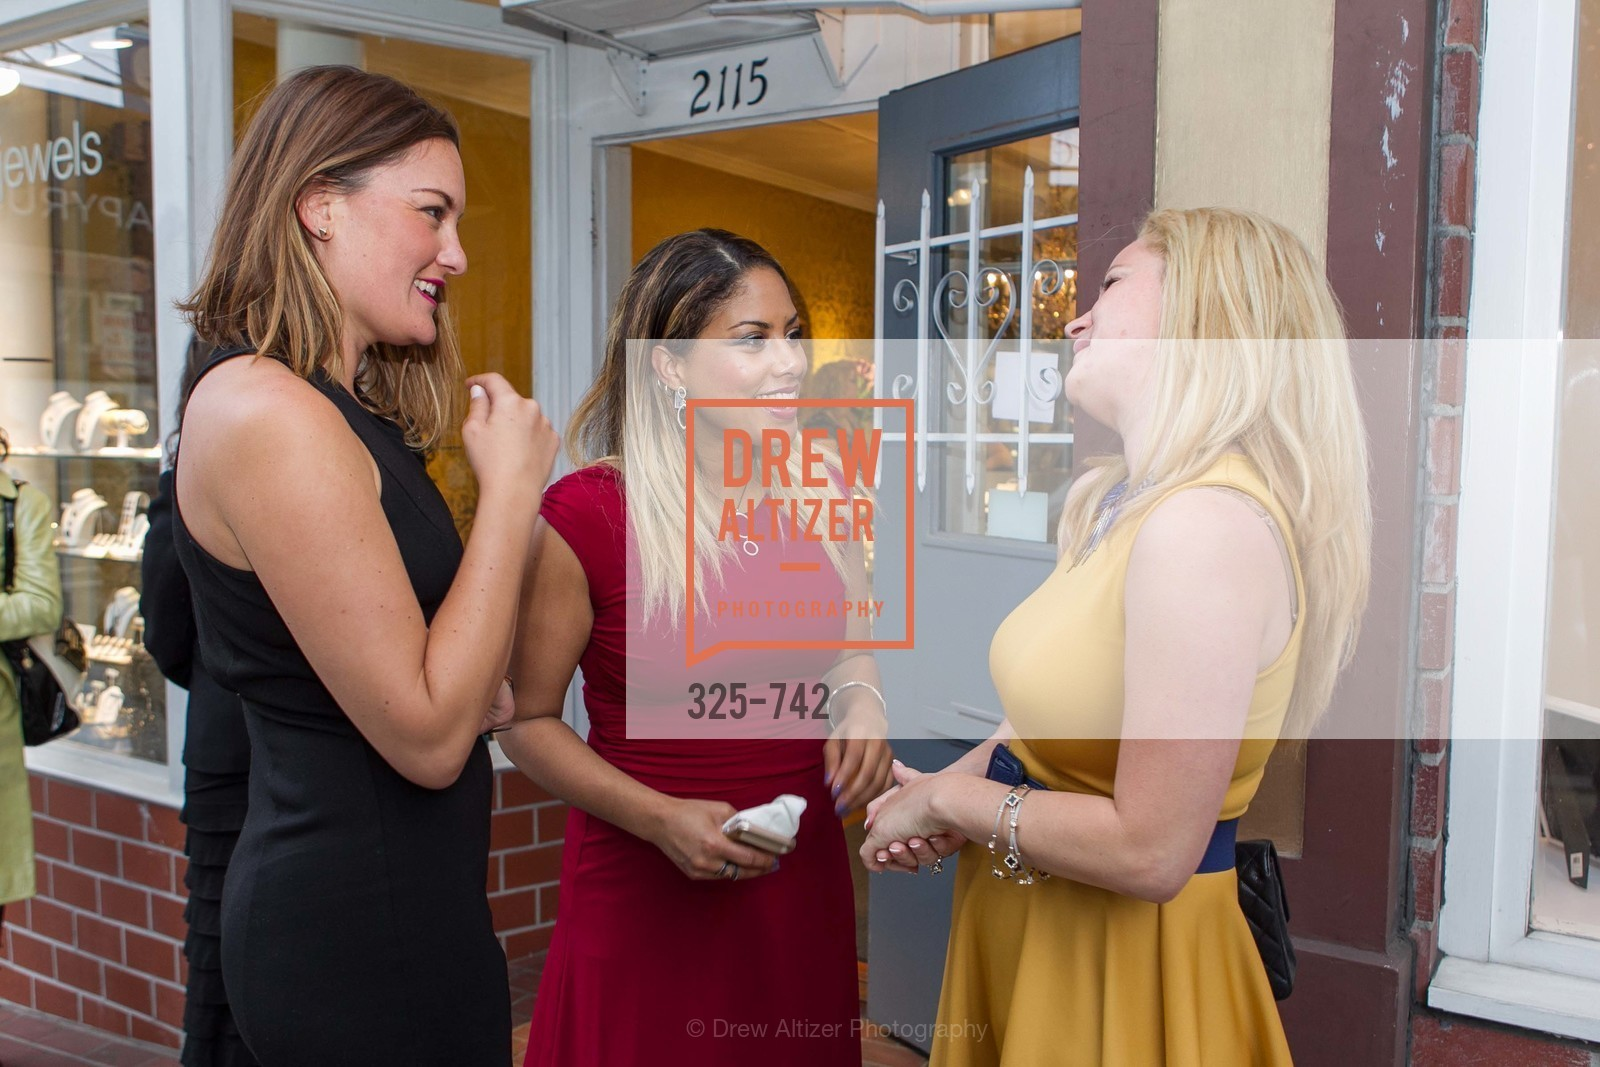 Rena Ramirez, Danielle Shareshian, LUXETIGERS & GALLERY OF JEWELS Benefit for Dress for Success, US, May 20th, 2015,Drew Altizer, Drew Altizer Photography, full-service agency, private events, San Francisco photographer, photographer california